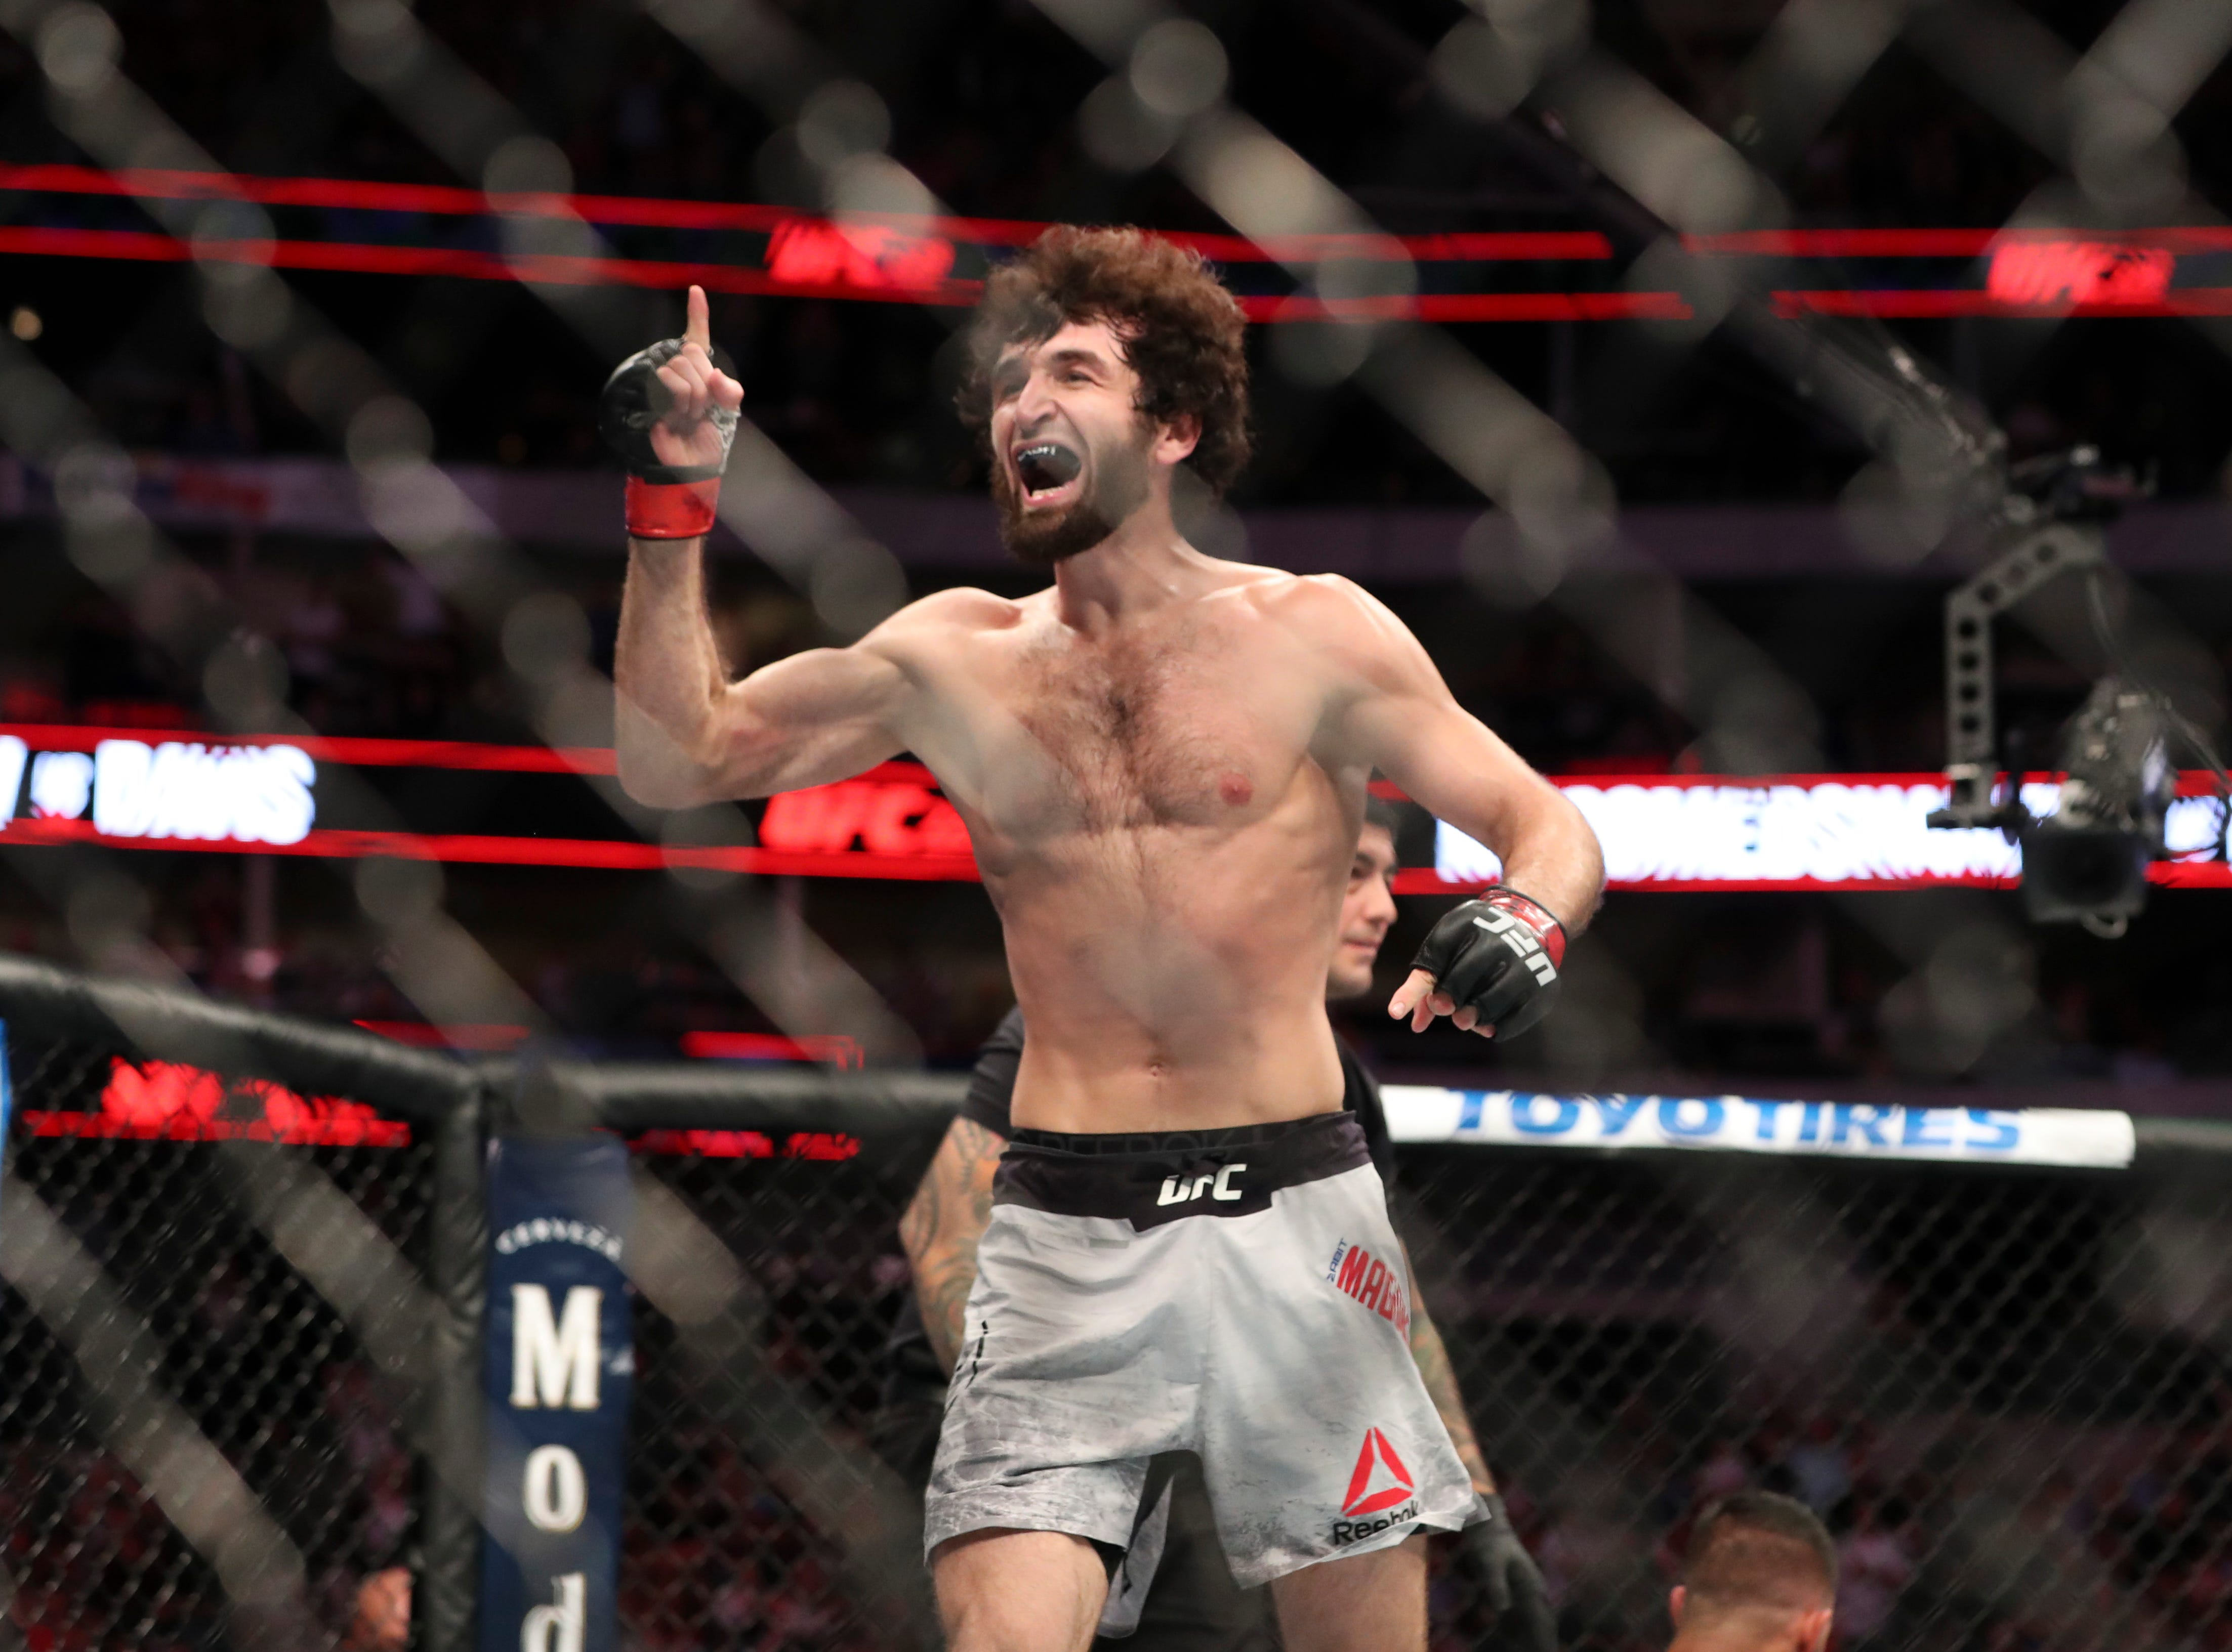 Zabit Magomedsharipov (red gloves) reacts after defeating  Brandon Davis (not pictured) during UFC 228 at American Airlines Center.